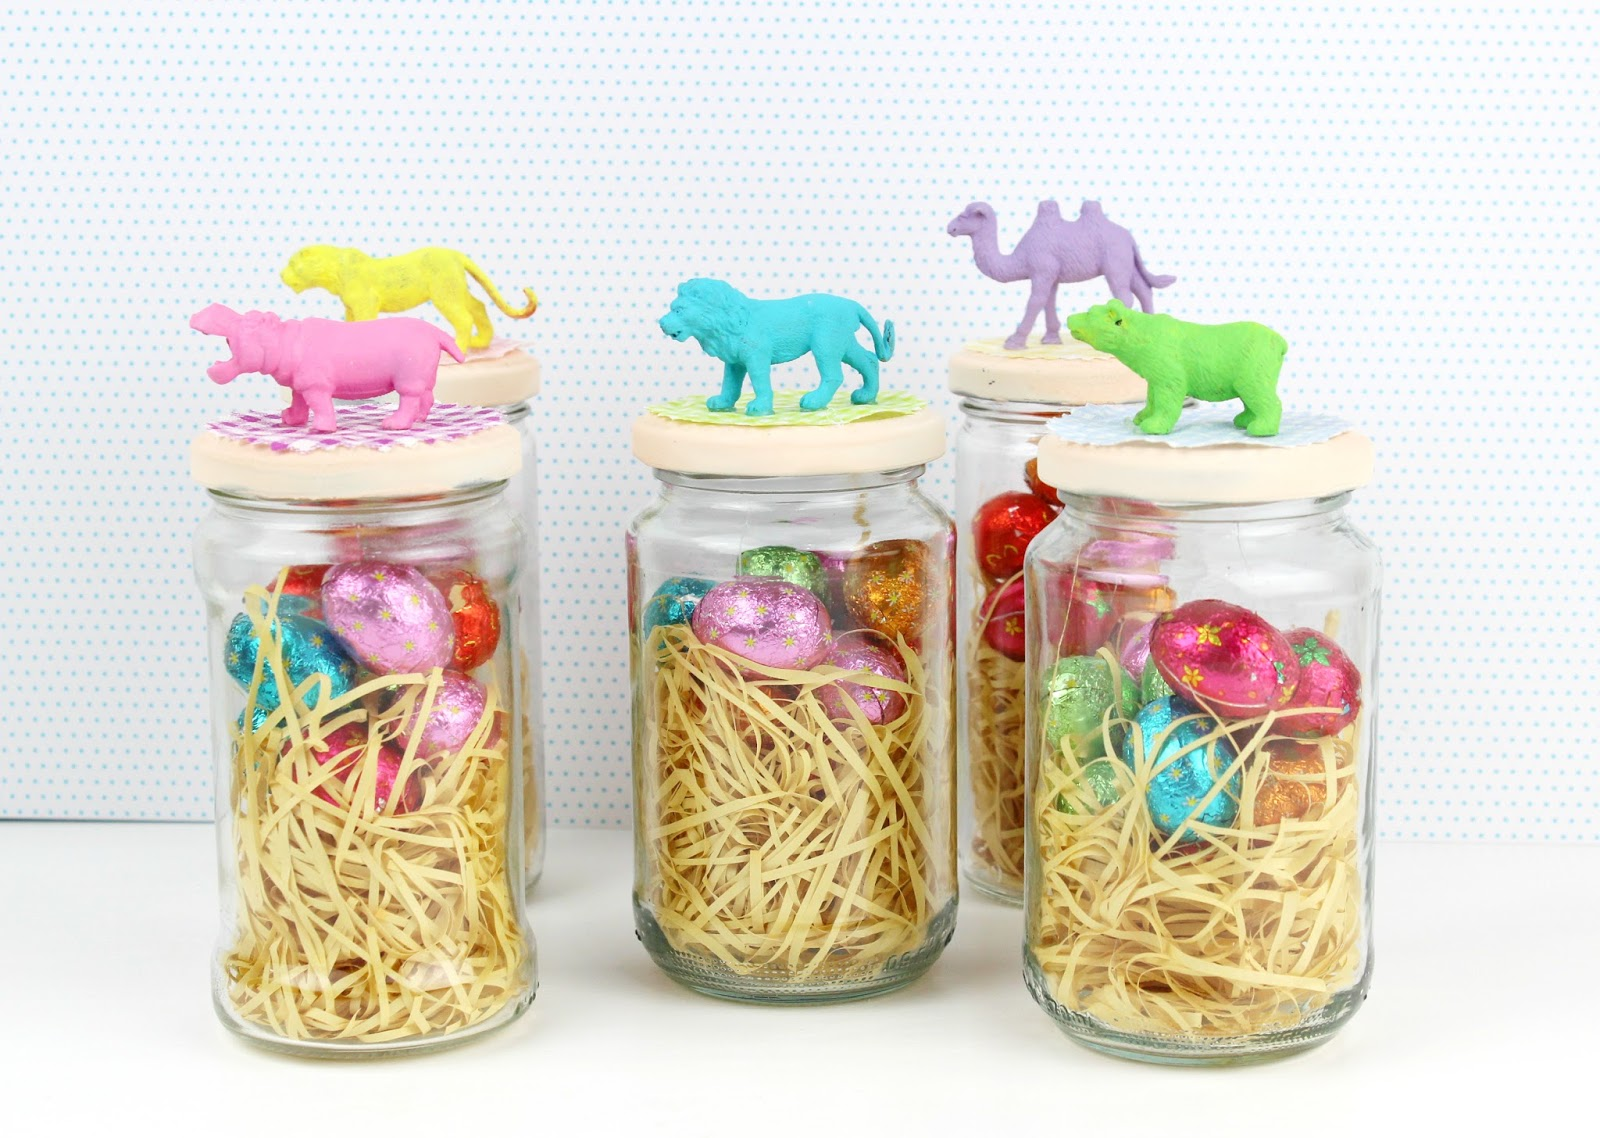 diy easter chcolate treats with decorated jars fun family crafts